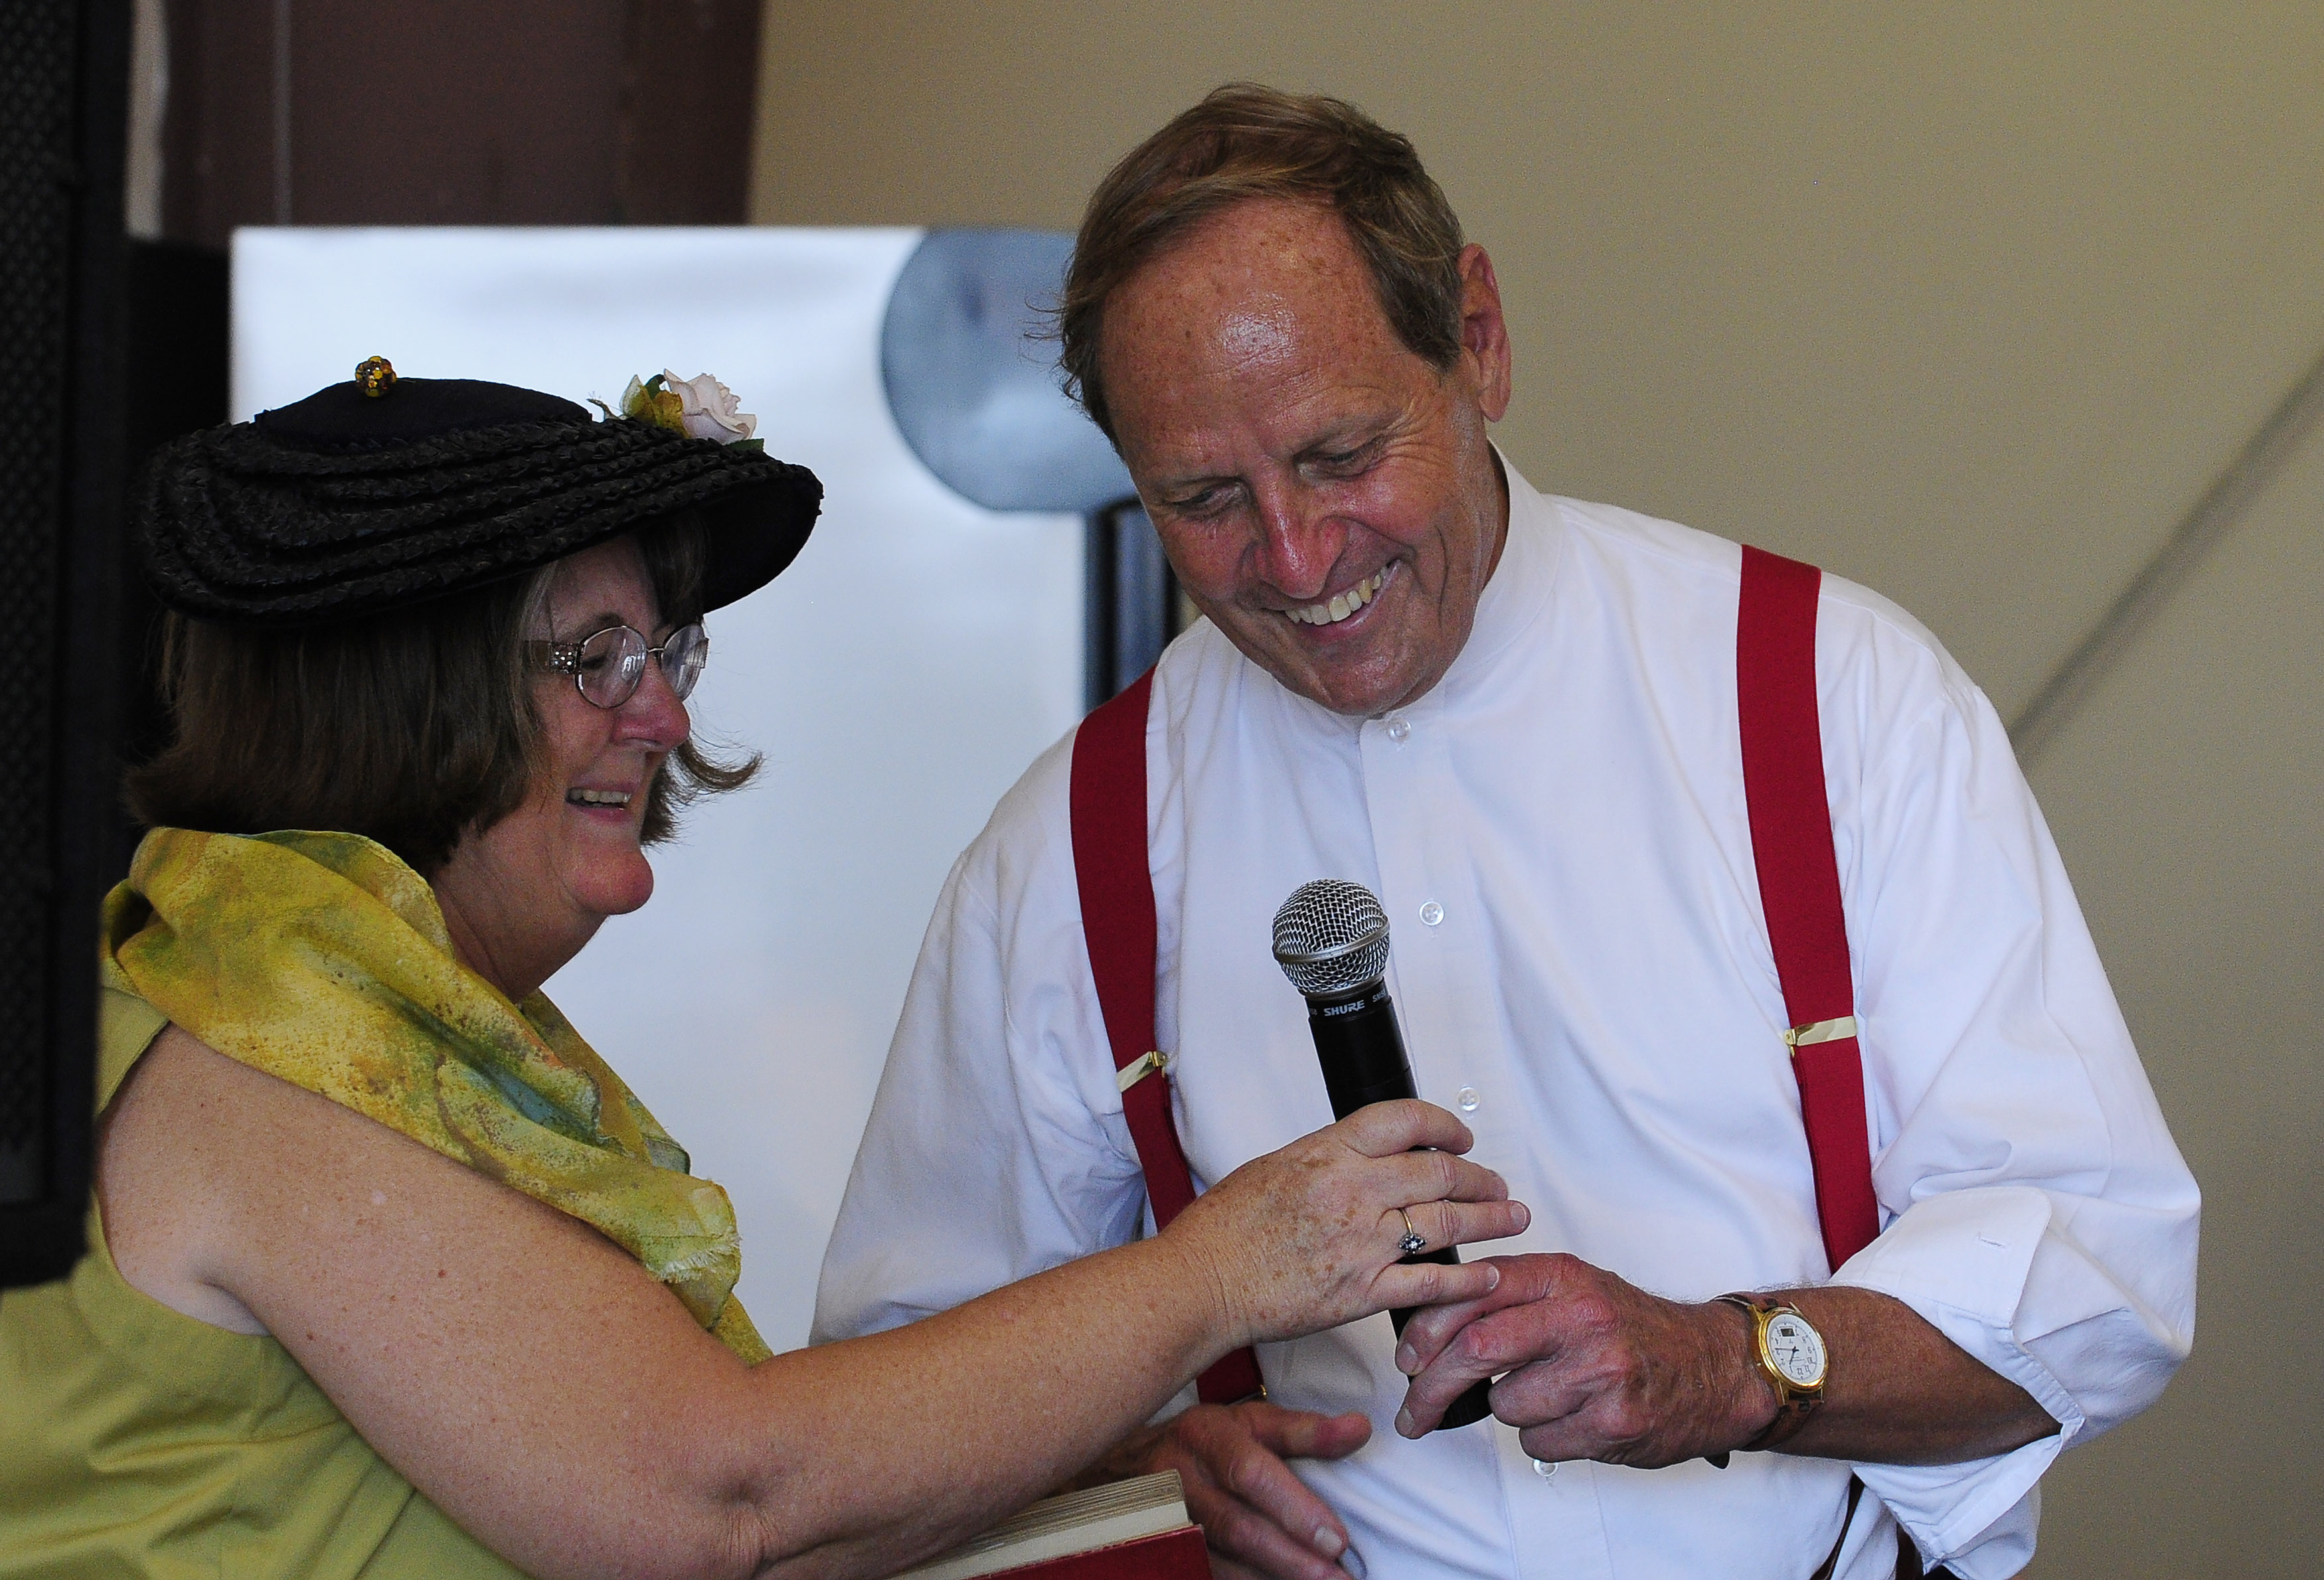 Wearing a Golden Age of aviation period costume, Peach State Aerodrome owner Ron Alexander is introduced at Candler Field Museum during the 2011 Vintage Day celebration in Williamson, Georgia. Alexander and a passenger died in a Jenny vintage airplane crash Nov. 17. Photo by David Tulis.